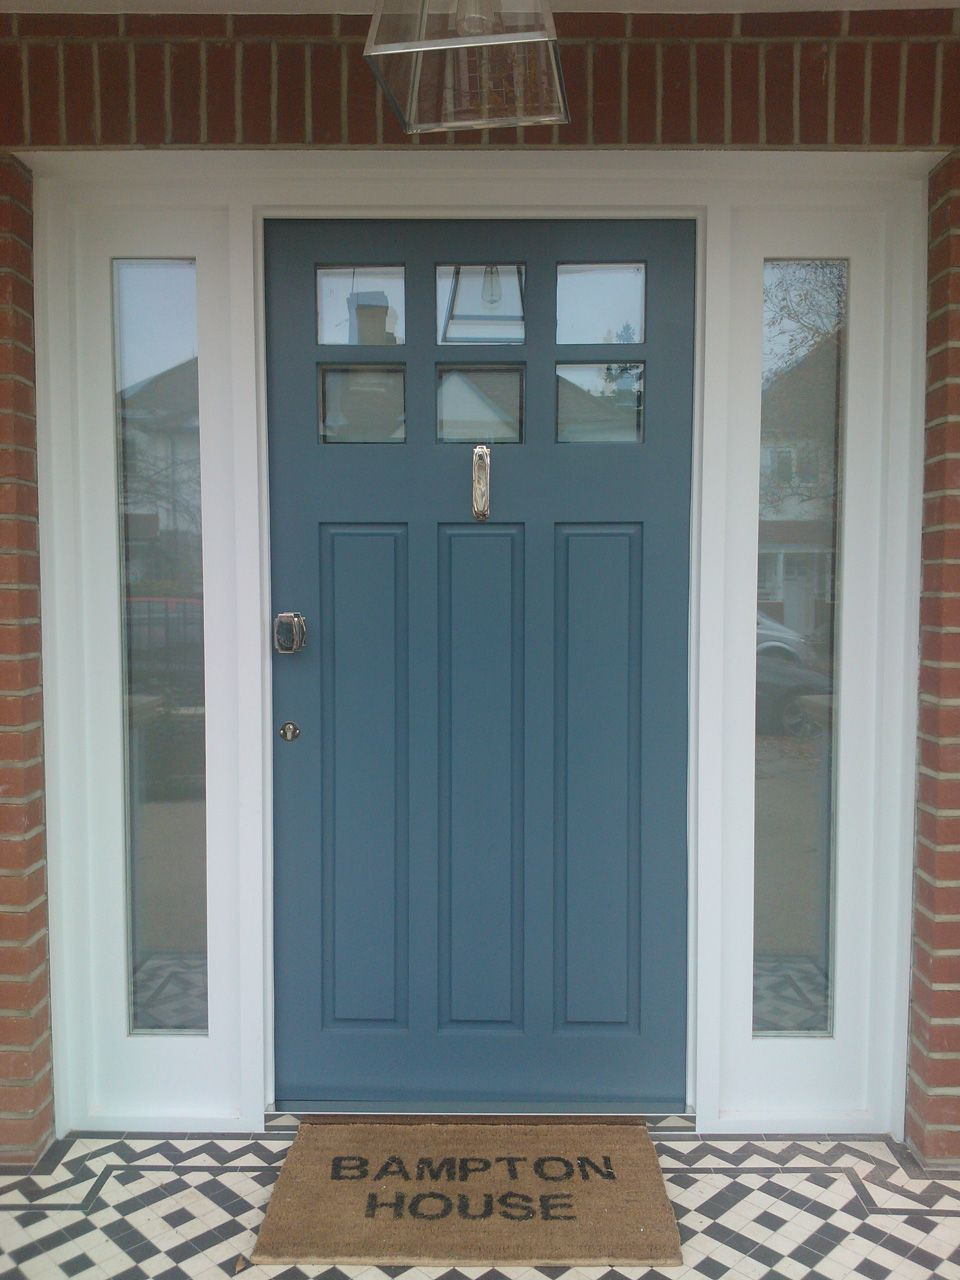 Merveilleux Insulated Exterior Door Impressive With Photo Of Insulated Exterior  Exterior New On Design